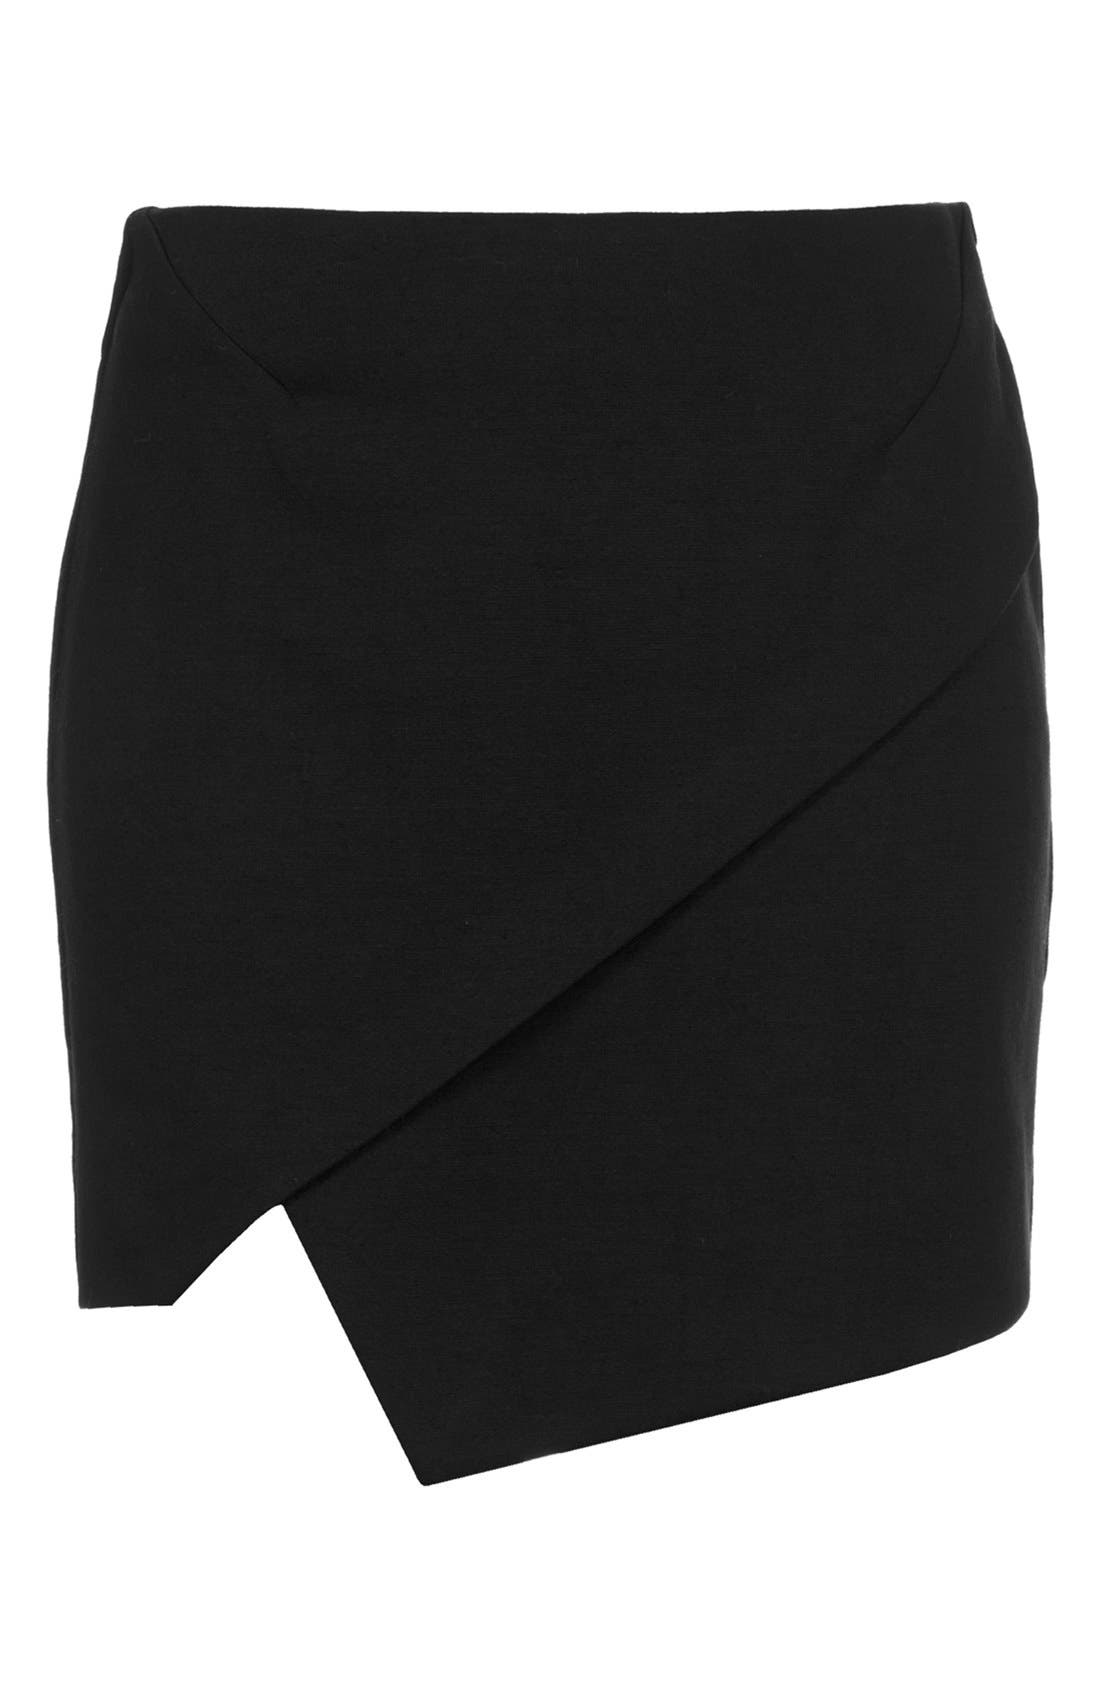 TOPSHOP,                             Asymmetrical Miniskirt,                             Alternate thumbnail 3, color,                             001